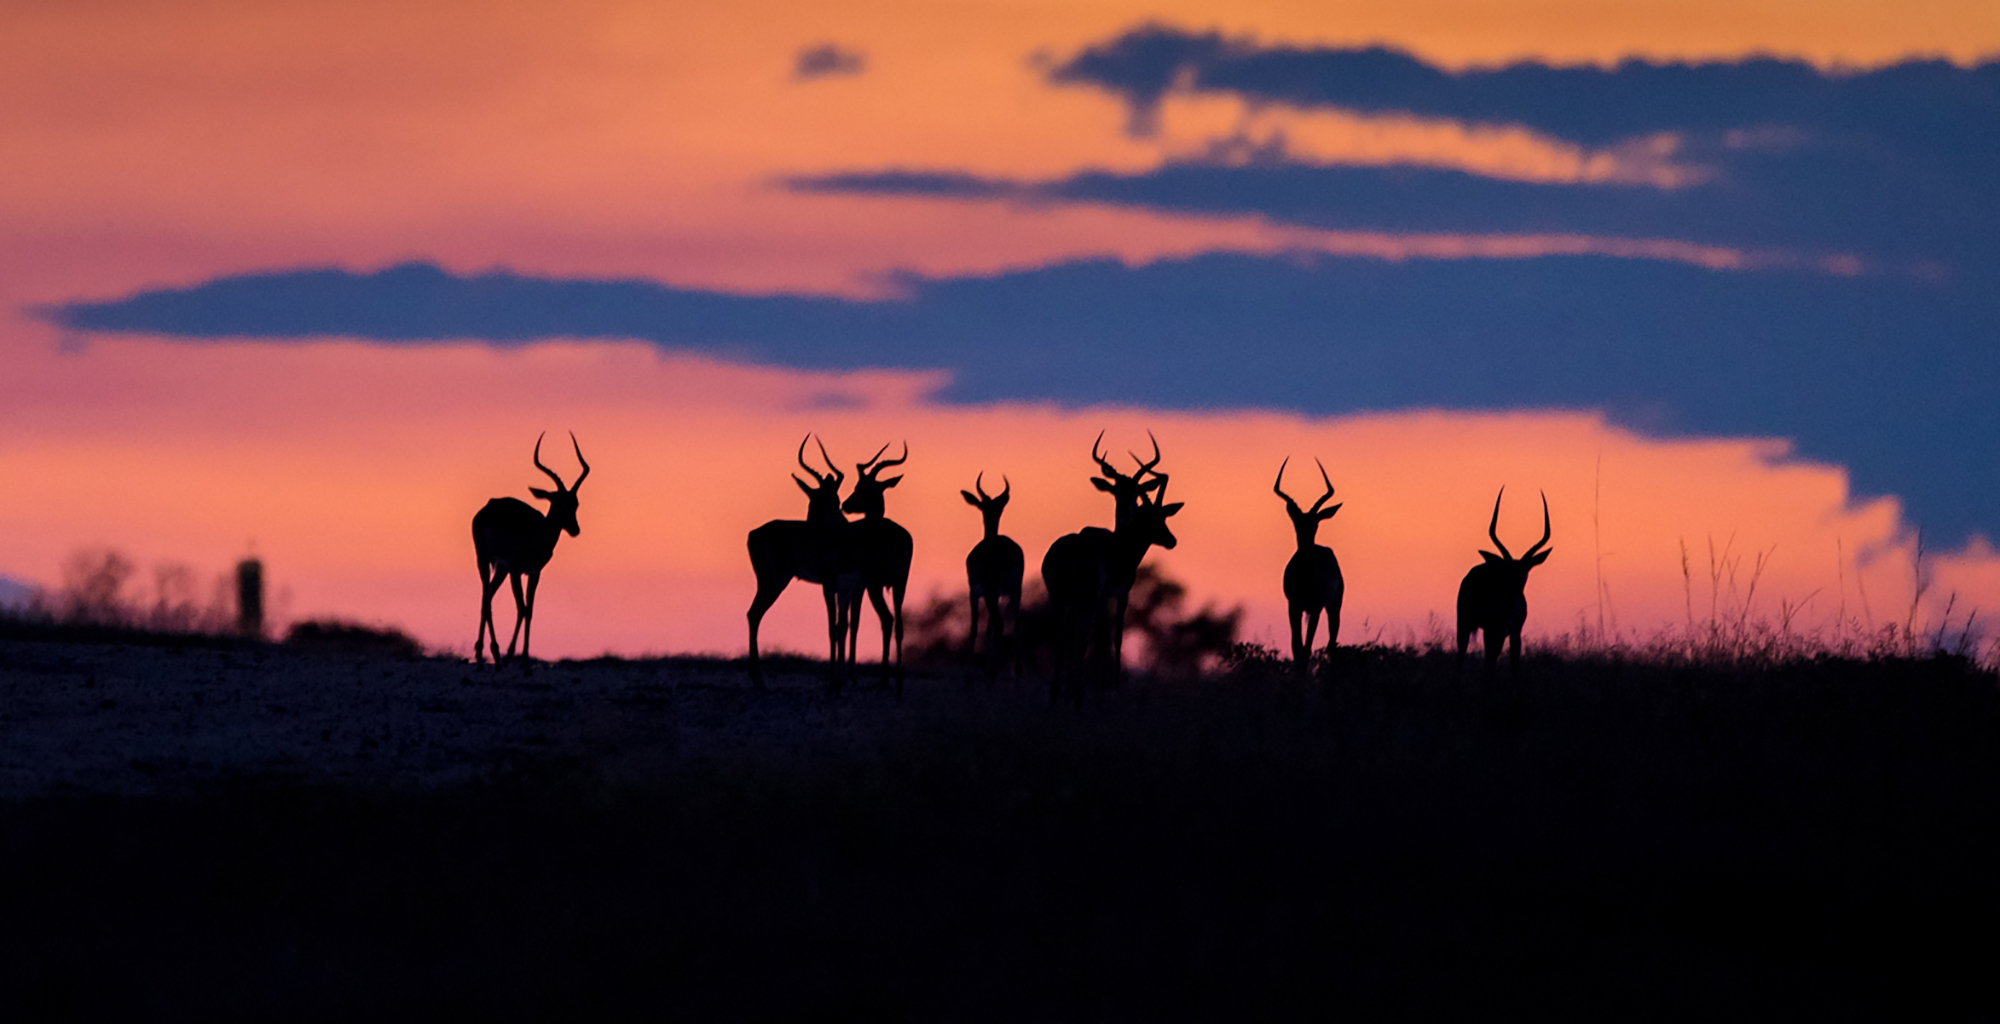 South-Africa-Wildlife-Impala-Silhouette